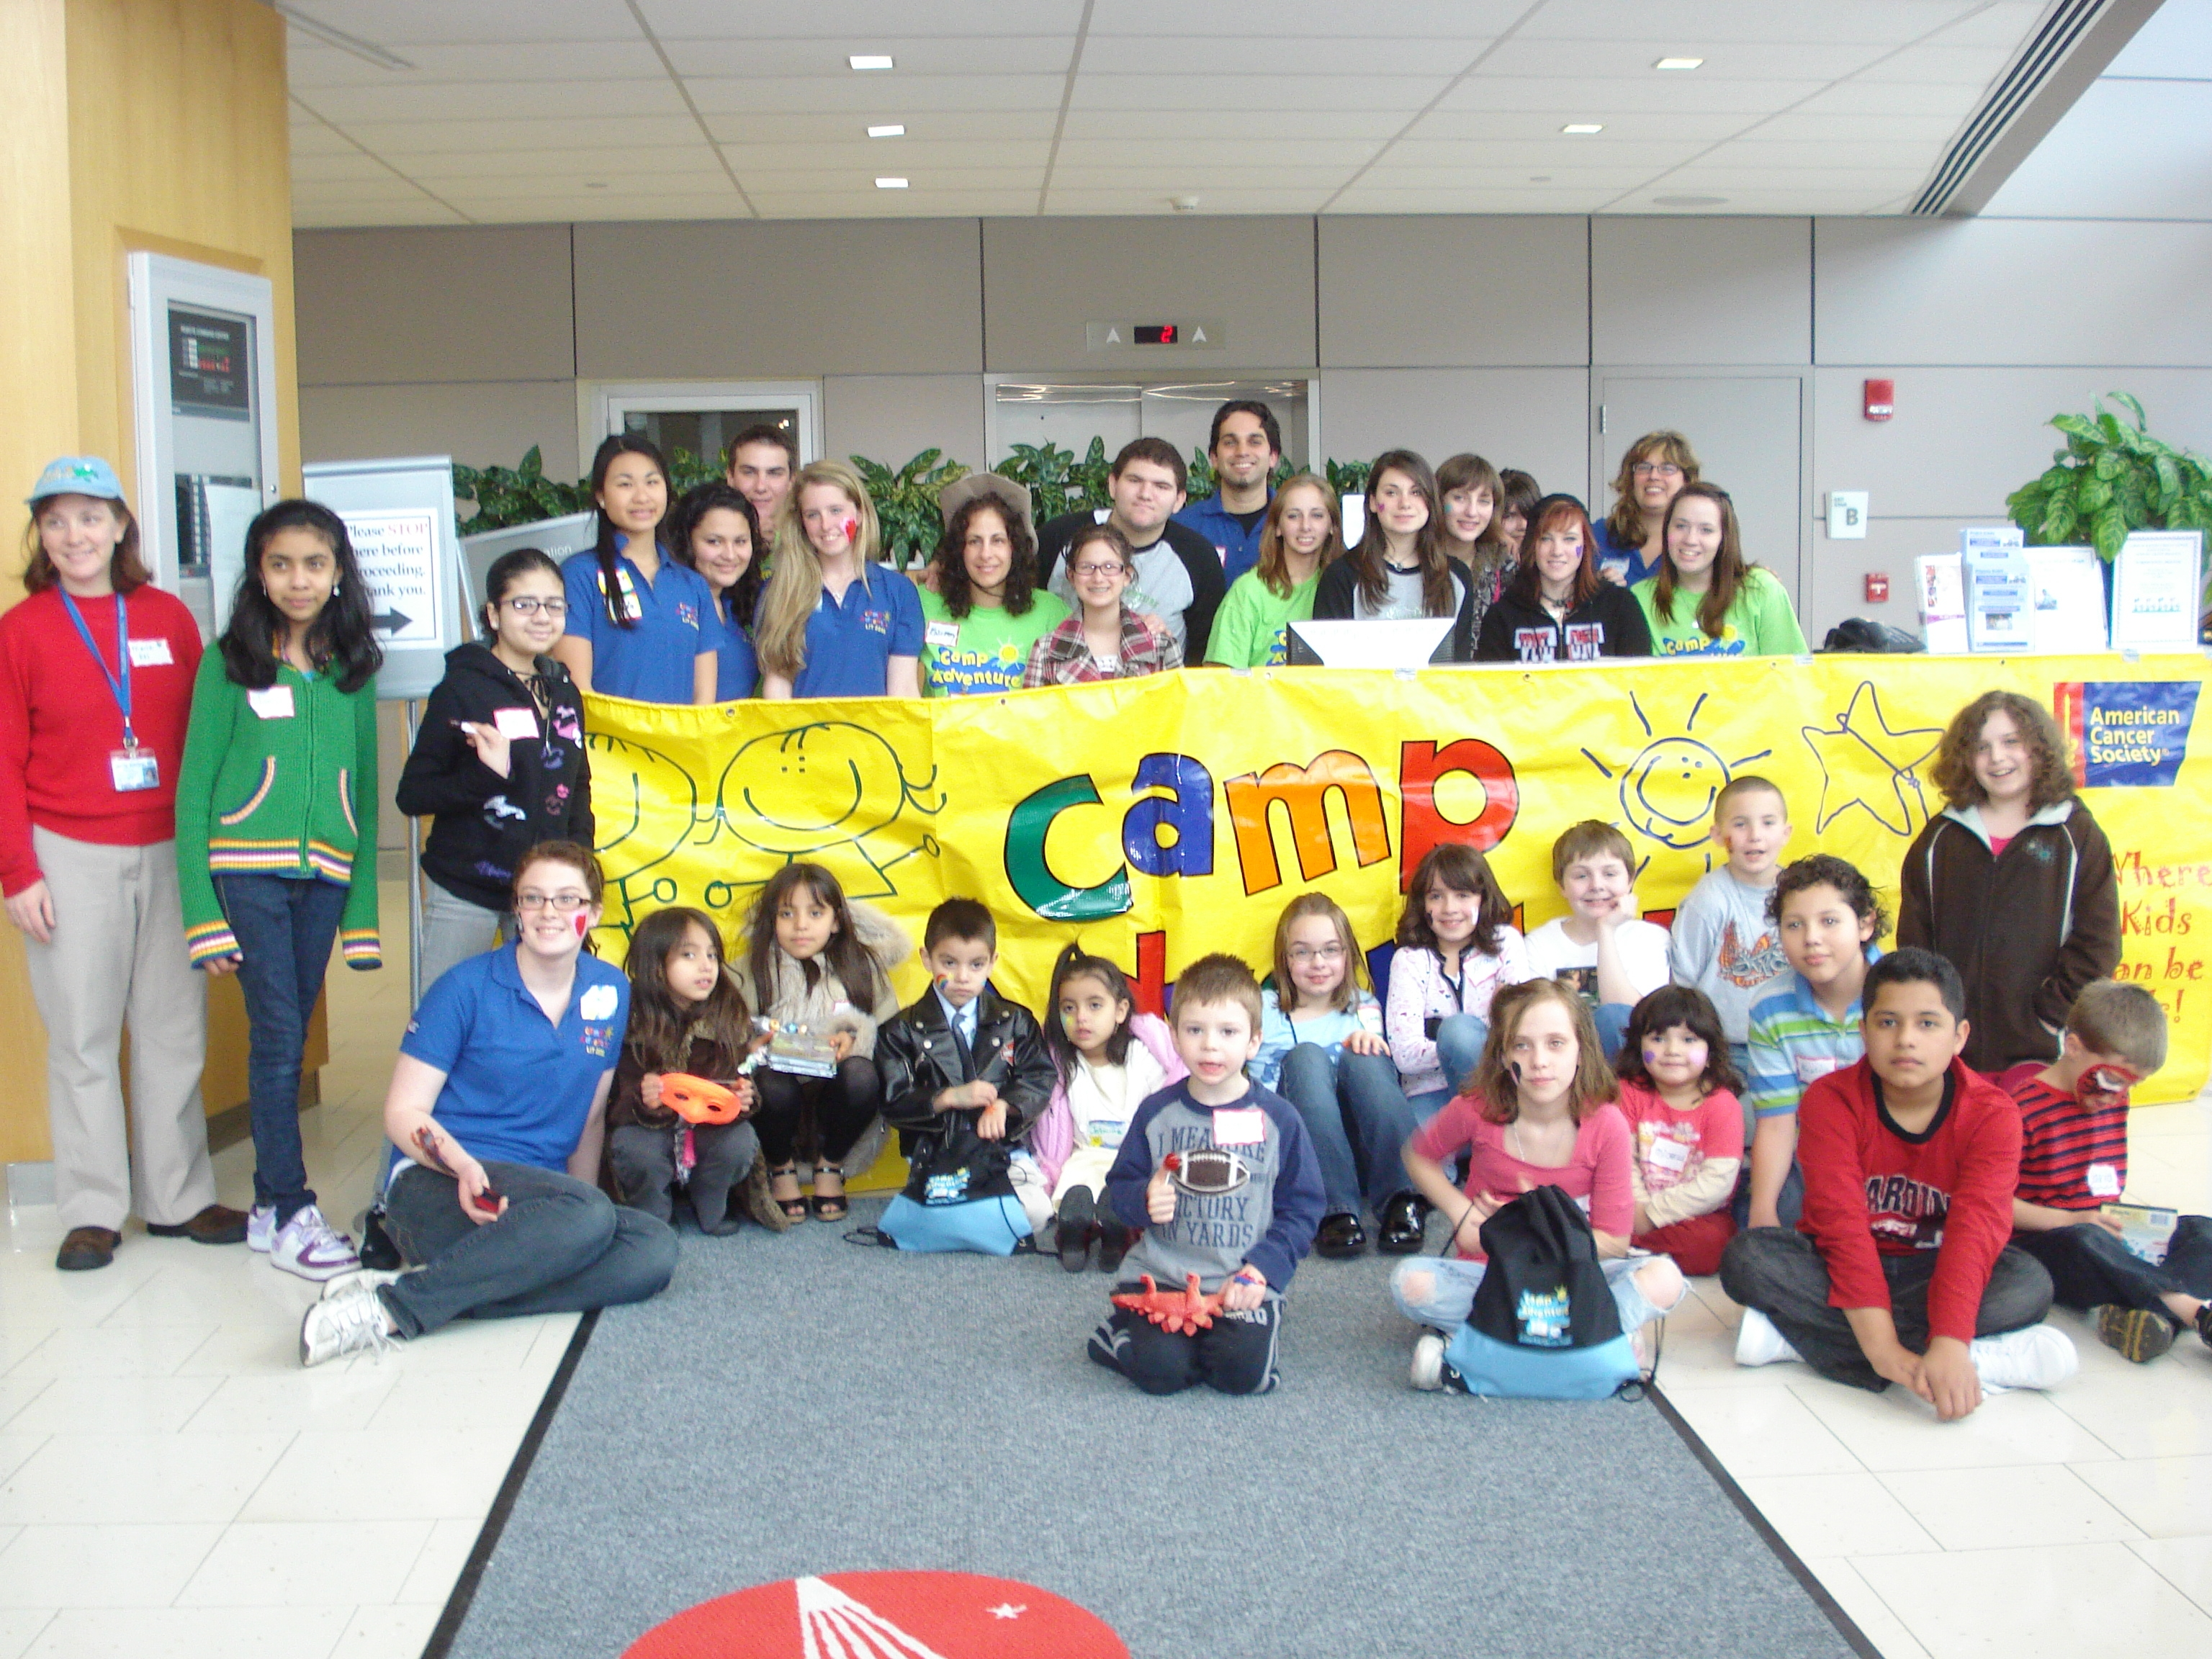 Some of the SBUMC pediatric cancer patients, their siblings, and SBUMC staff of Pediatric Hematology/Oncology gathered during A Day at Camp, a one-day preview of the American Cancer Society-sponsored Camp Adventure.